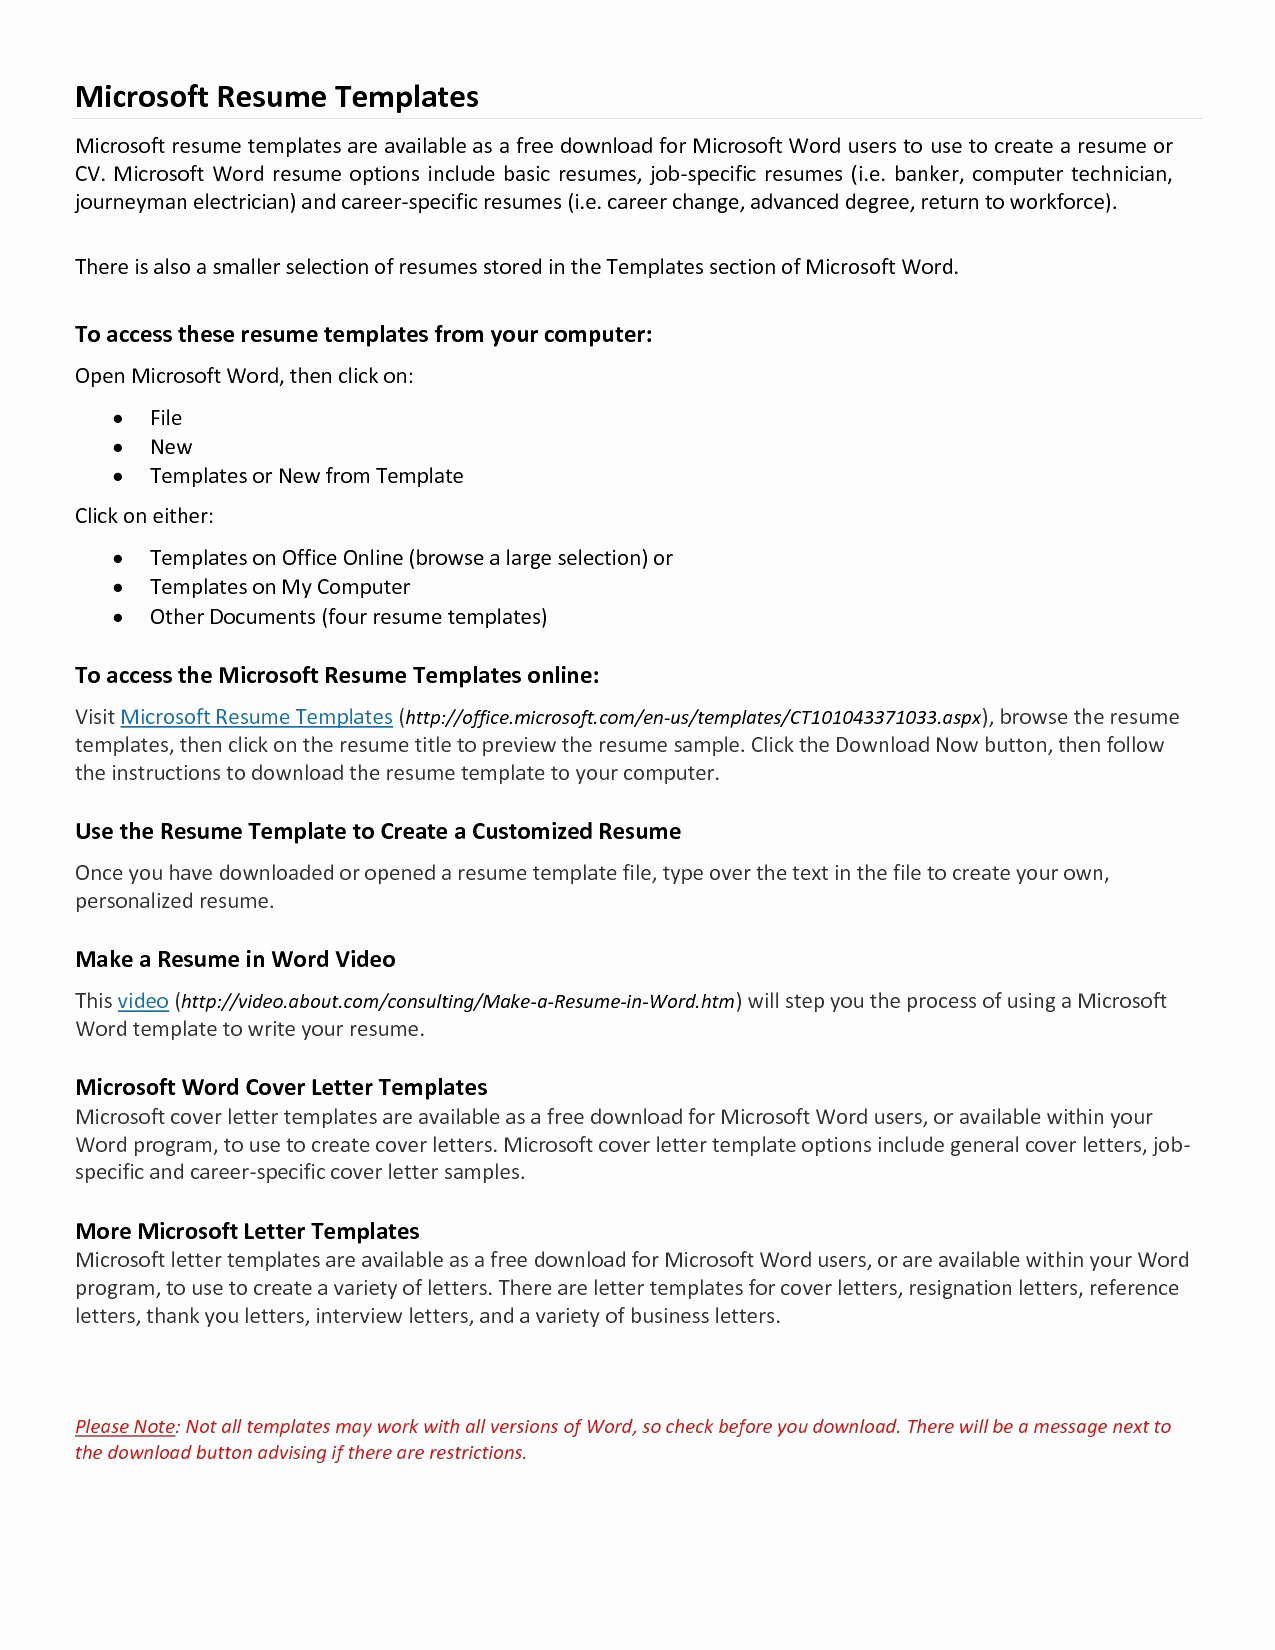 Microsoft Word Resume Cover Letter Template - Free Microsoft Resume Templates New Microsoft Word Resume Sample